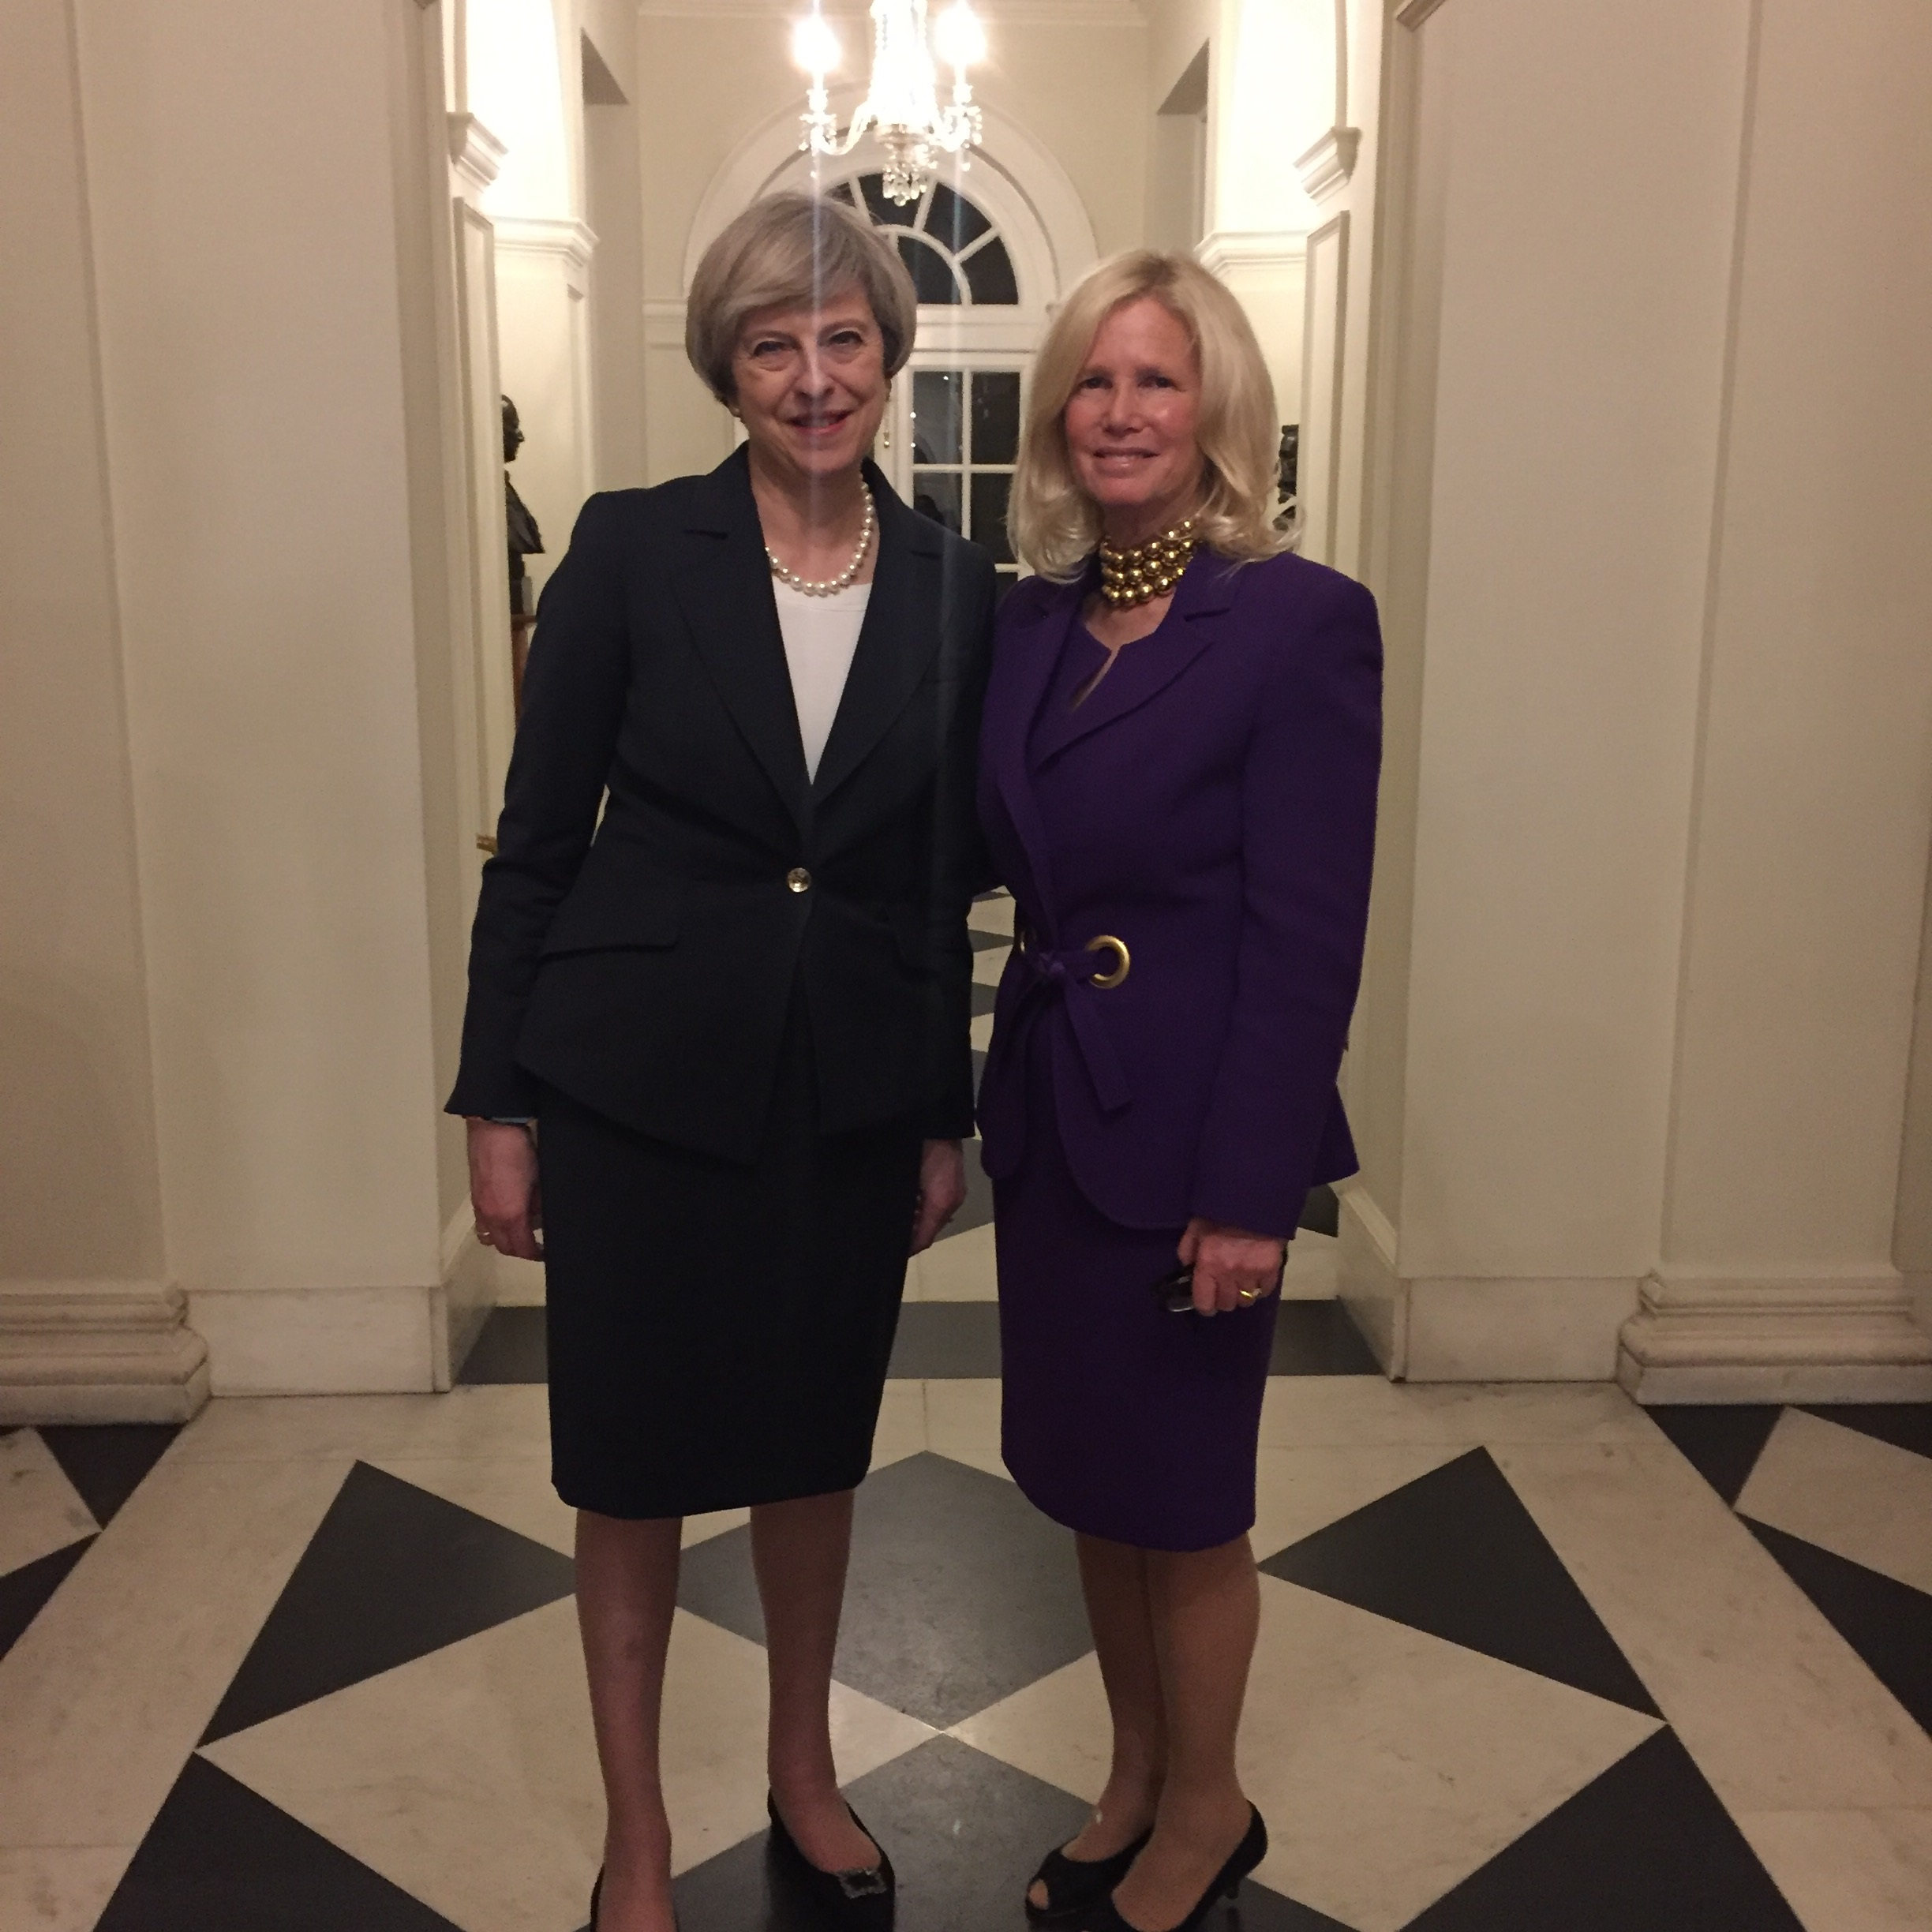 Prime Minister Theresa May and Rear Admiral Susan Blumenthal